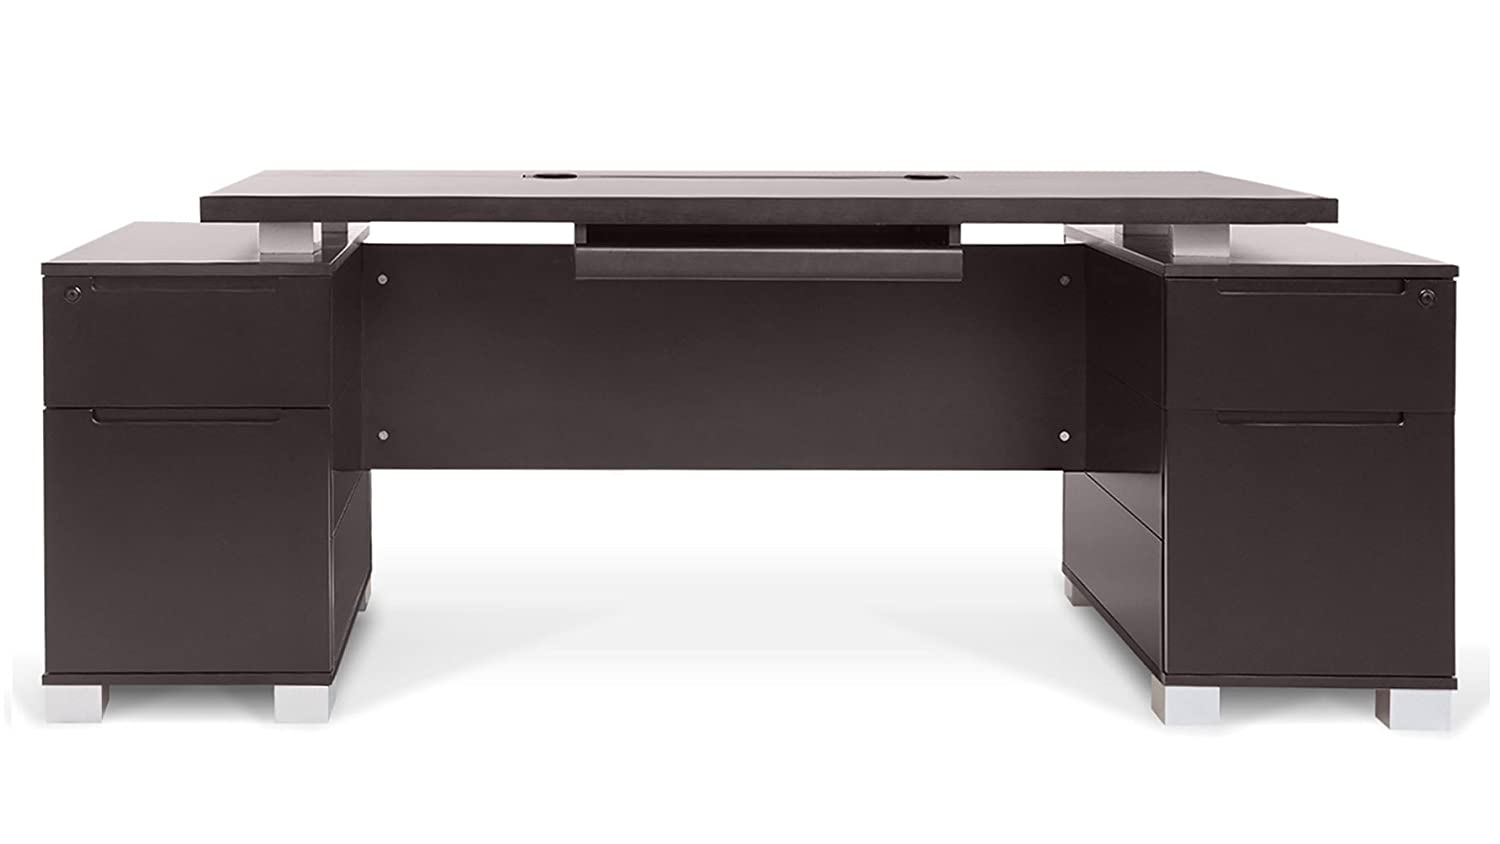 desk office ideas modern. Amazon.com: Ford Executive Modern Desk With Filing Cabinets - Dark Wood Finish: Kitchen \u0026 Dining Office Ideas